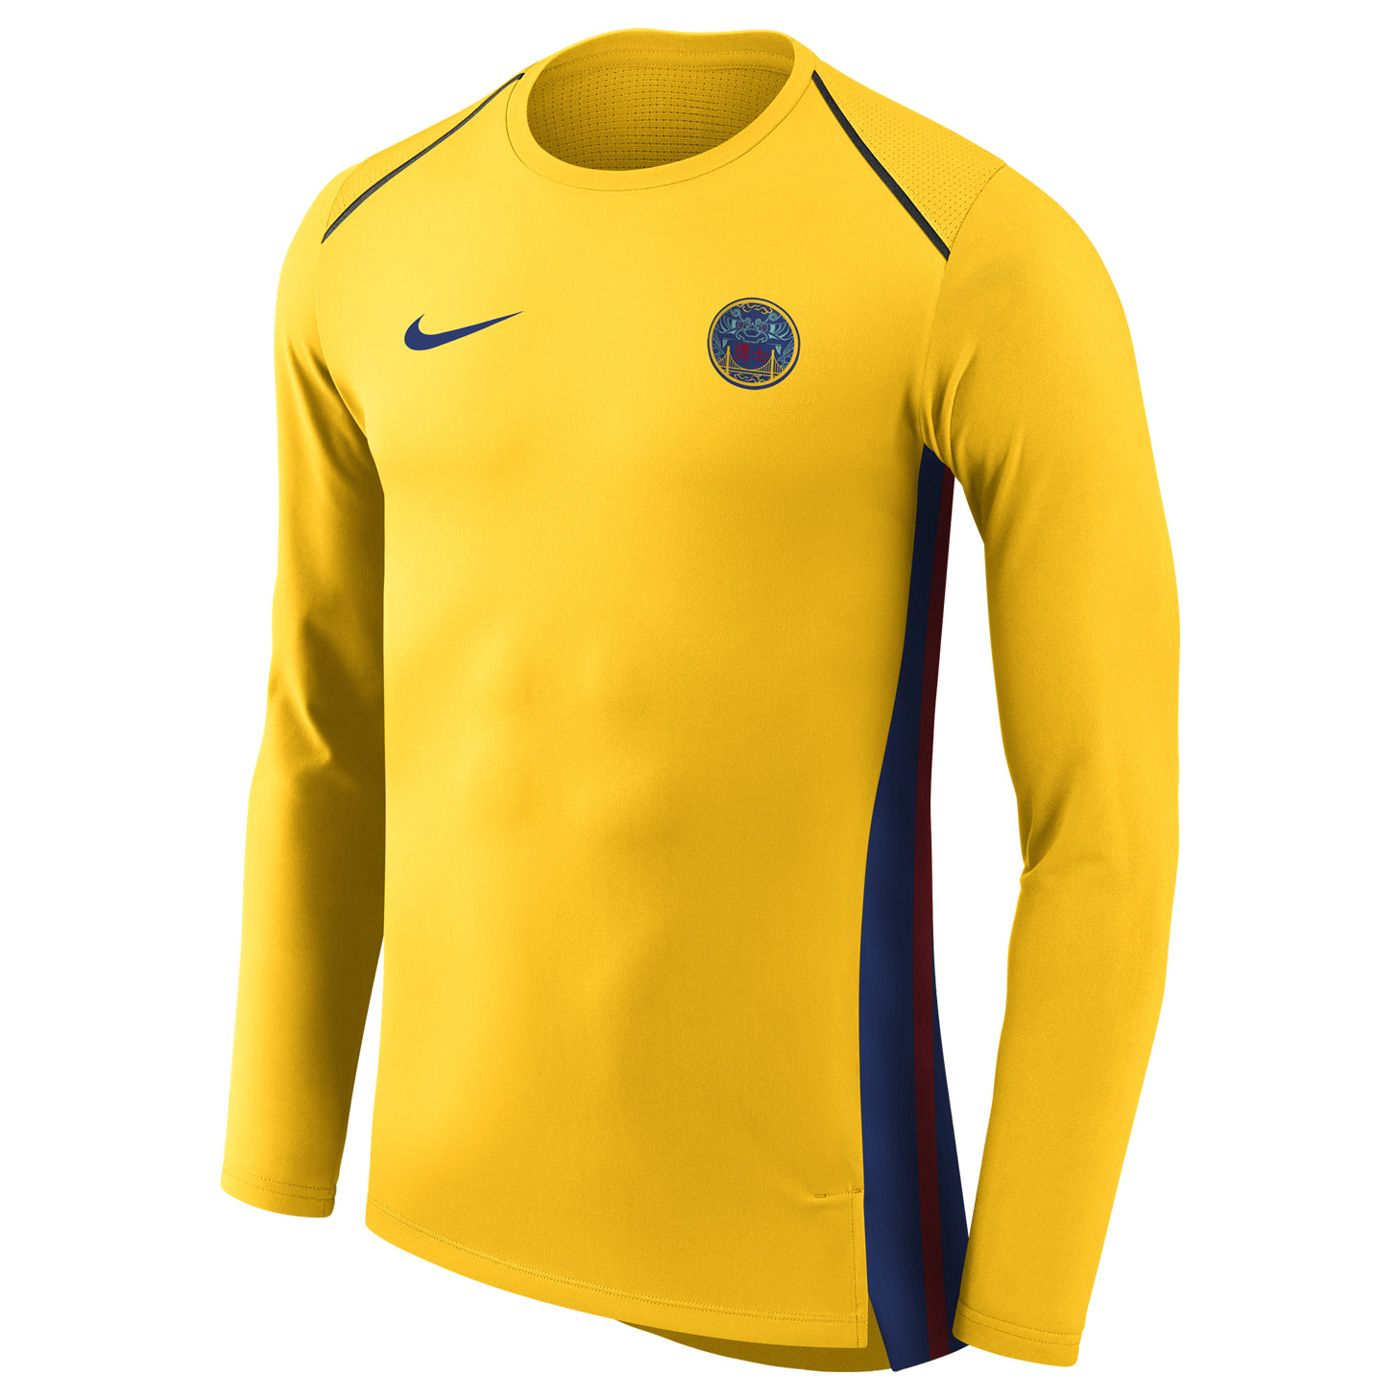 d3c1ab69f Golden State Warriors Nike Men s Chinese Heritage City Edition Hyper Elite  Long Sleeve Top - Gold